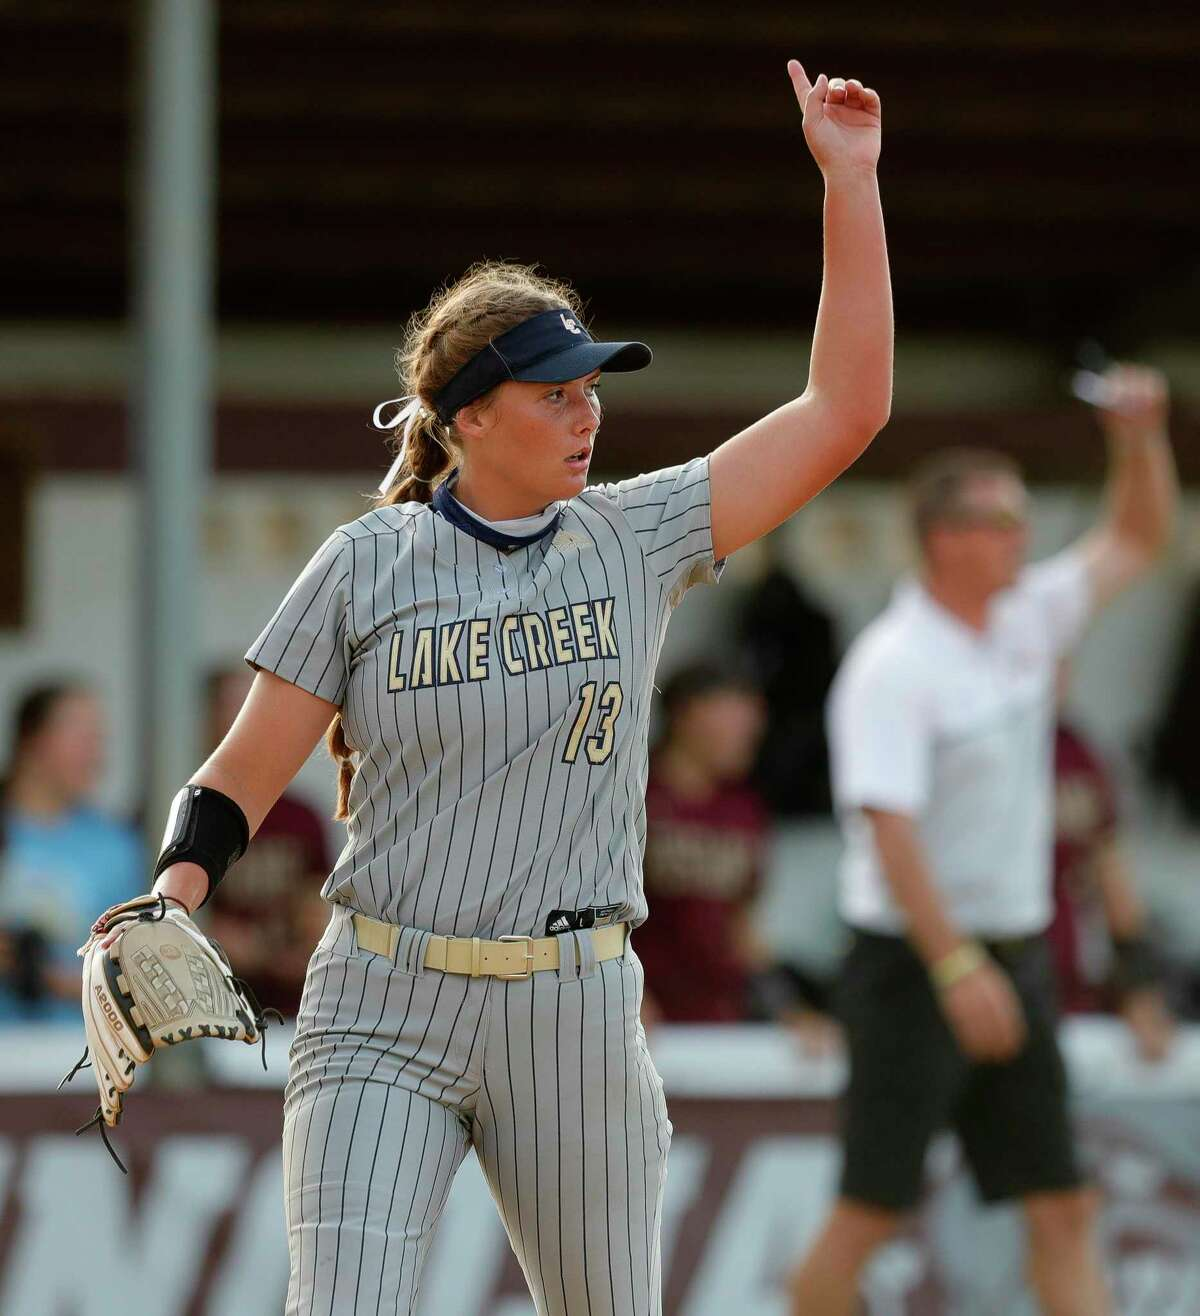 Lake Creek senior Emiley Kennedy is The Courier's Player of the Year. Kennedy, a pitcher, is signed with Texas A&M.